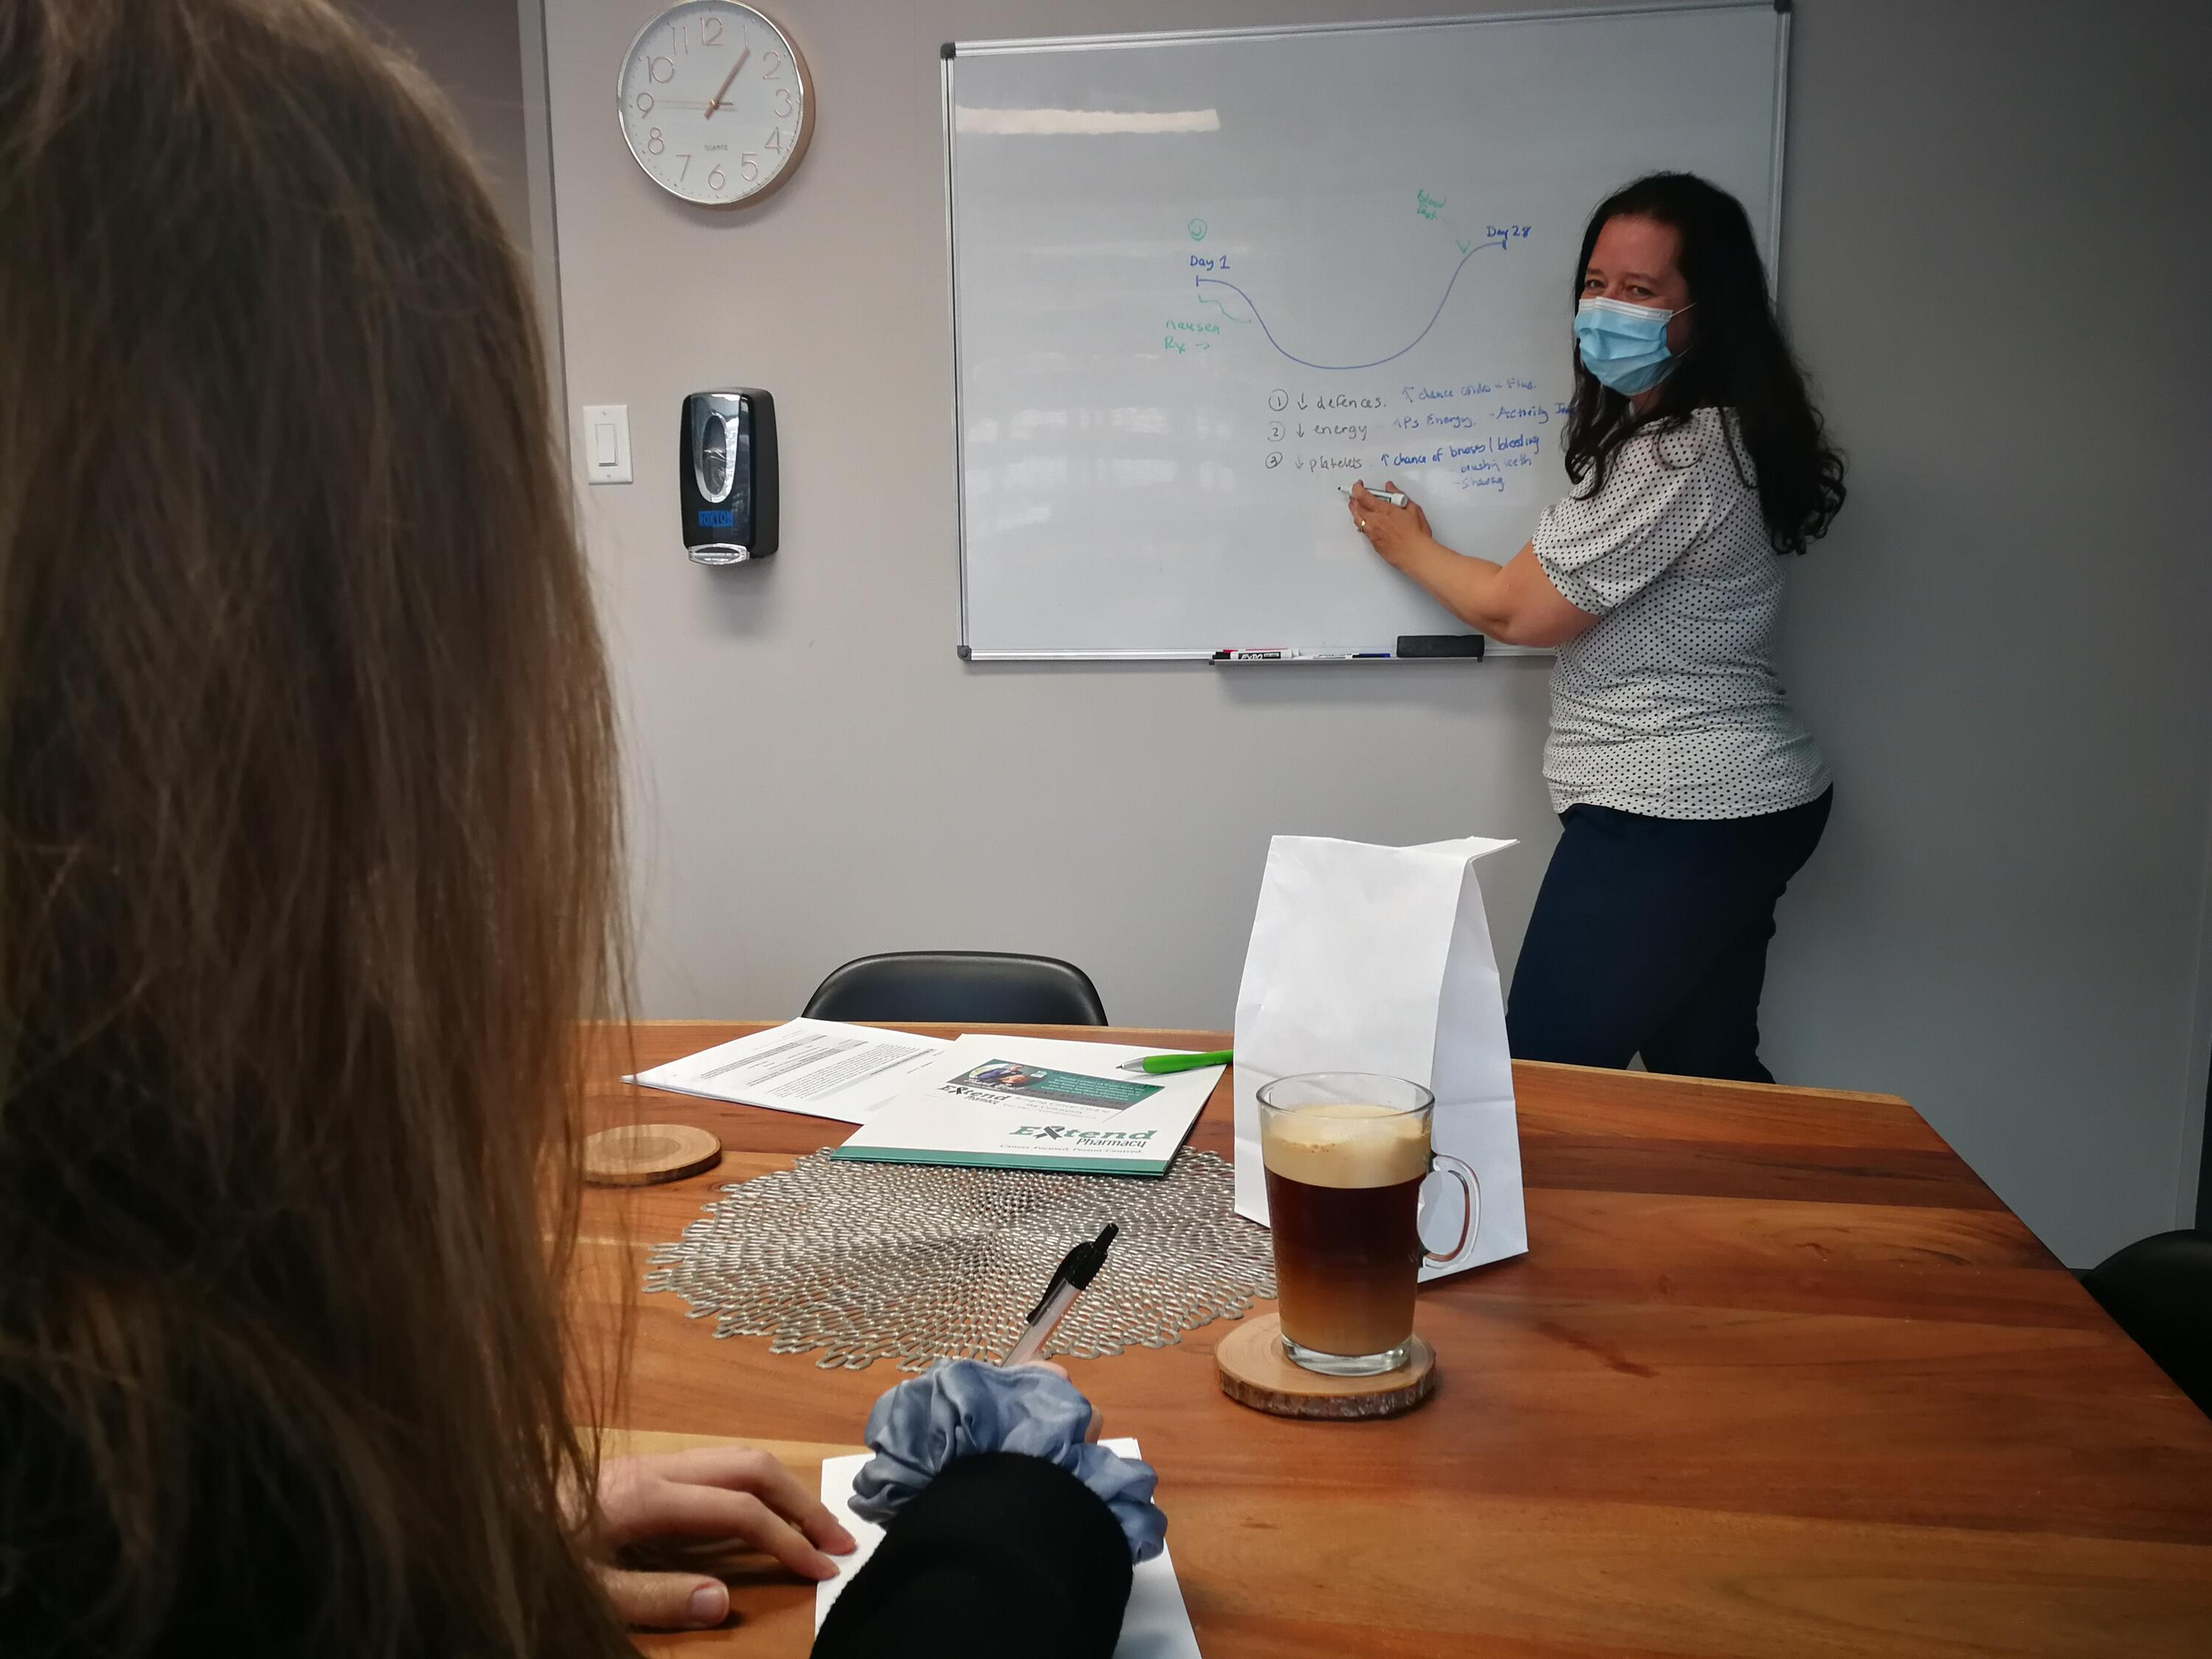 Tina Crosbie at a whiteboard drawing an explanation for someone